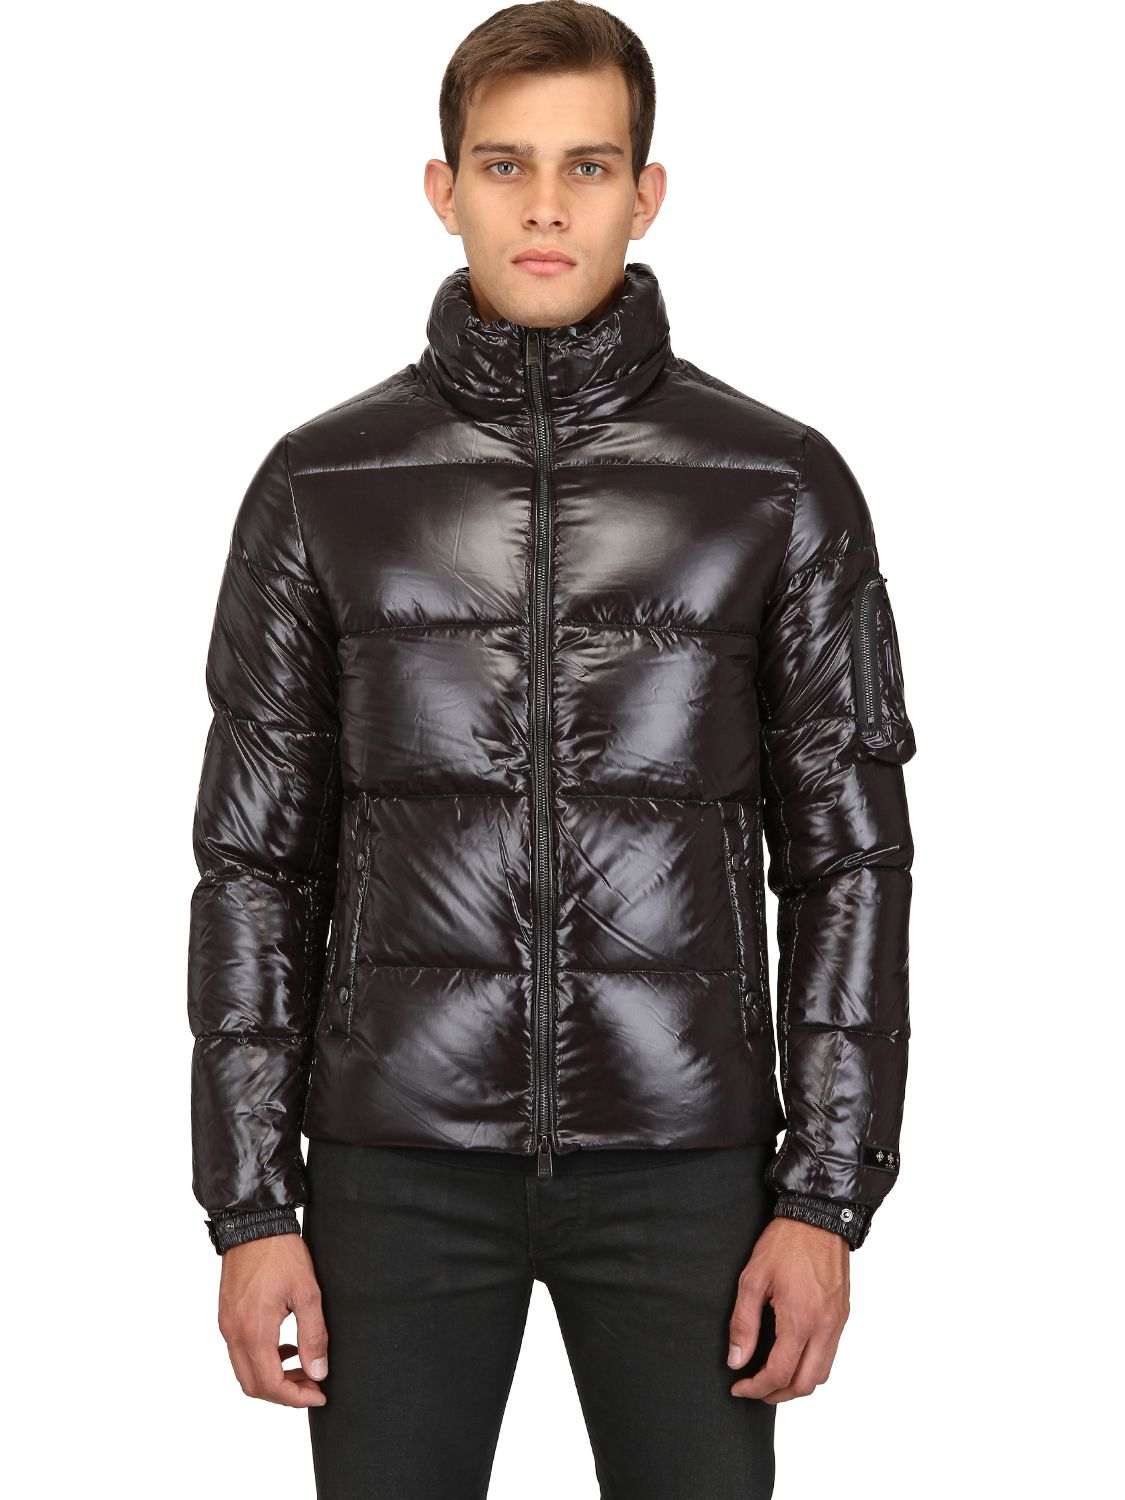 Lyst - Tatras Kraz Shiny Nylon Hooded Down Jacket in Black for Men